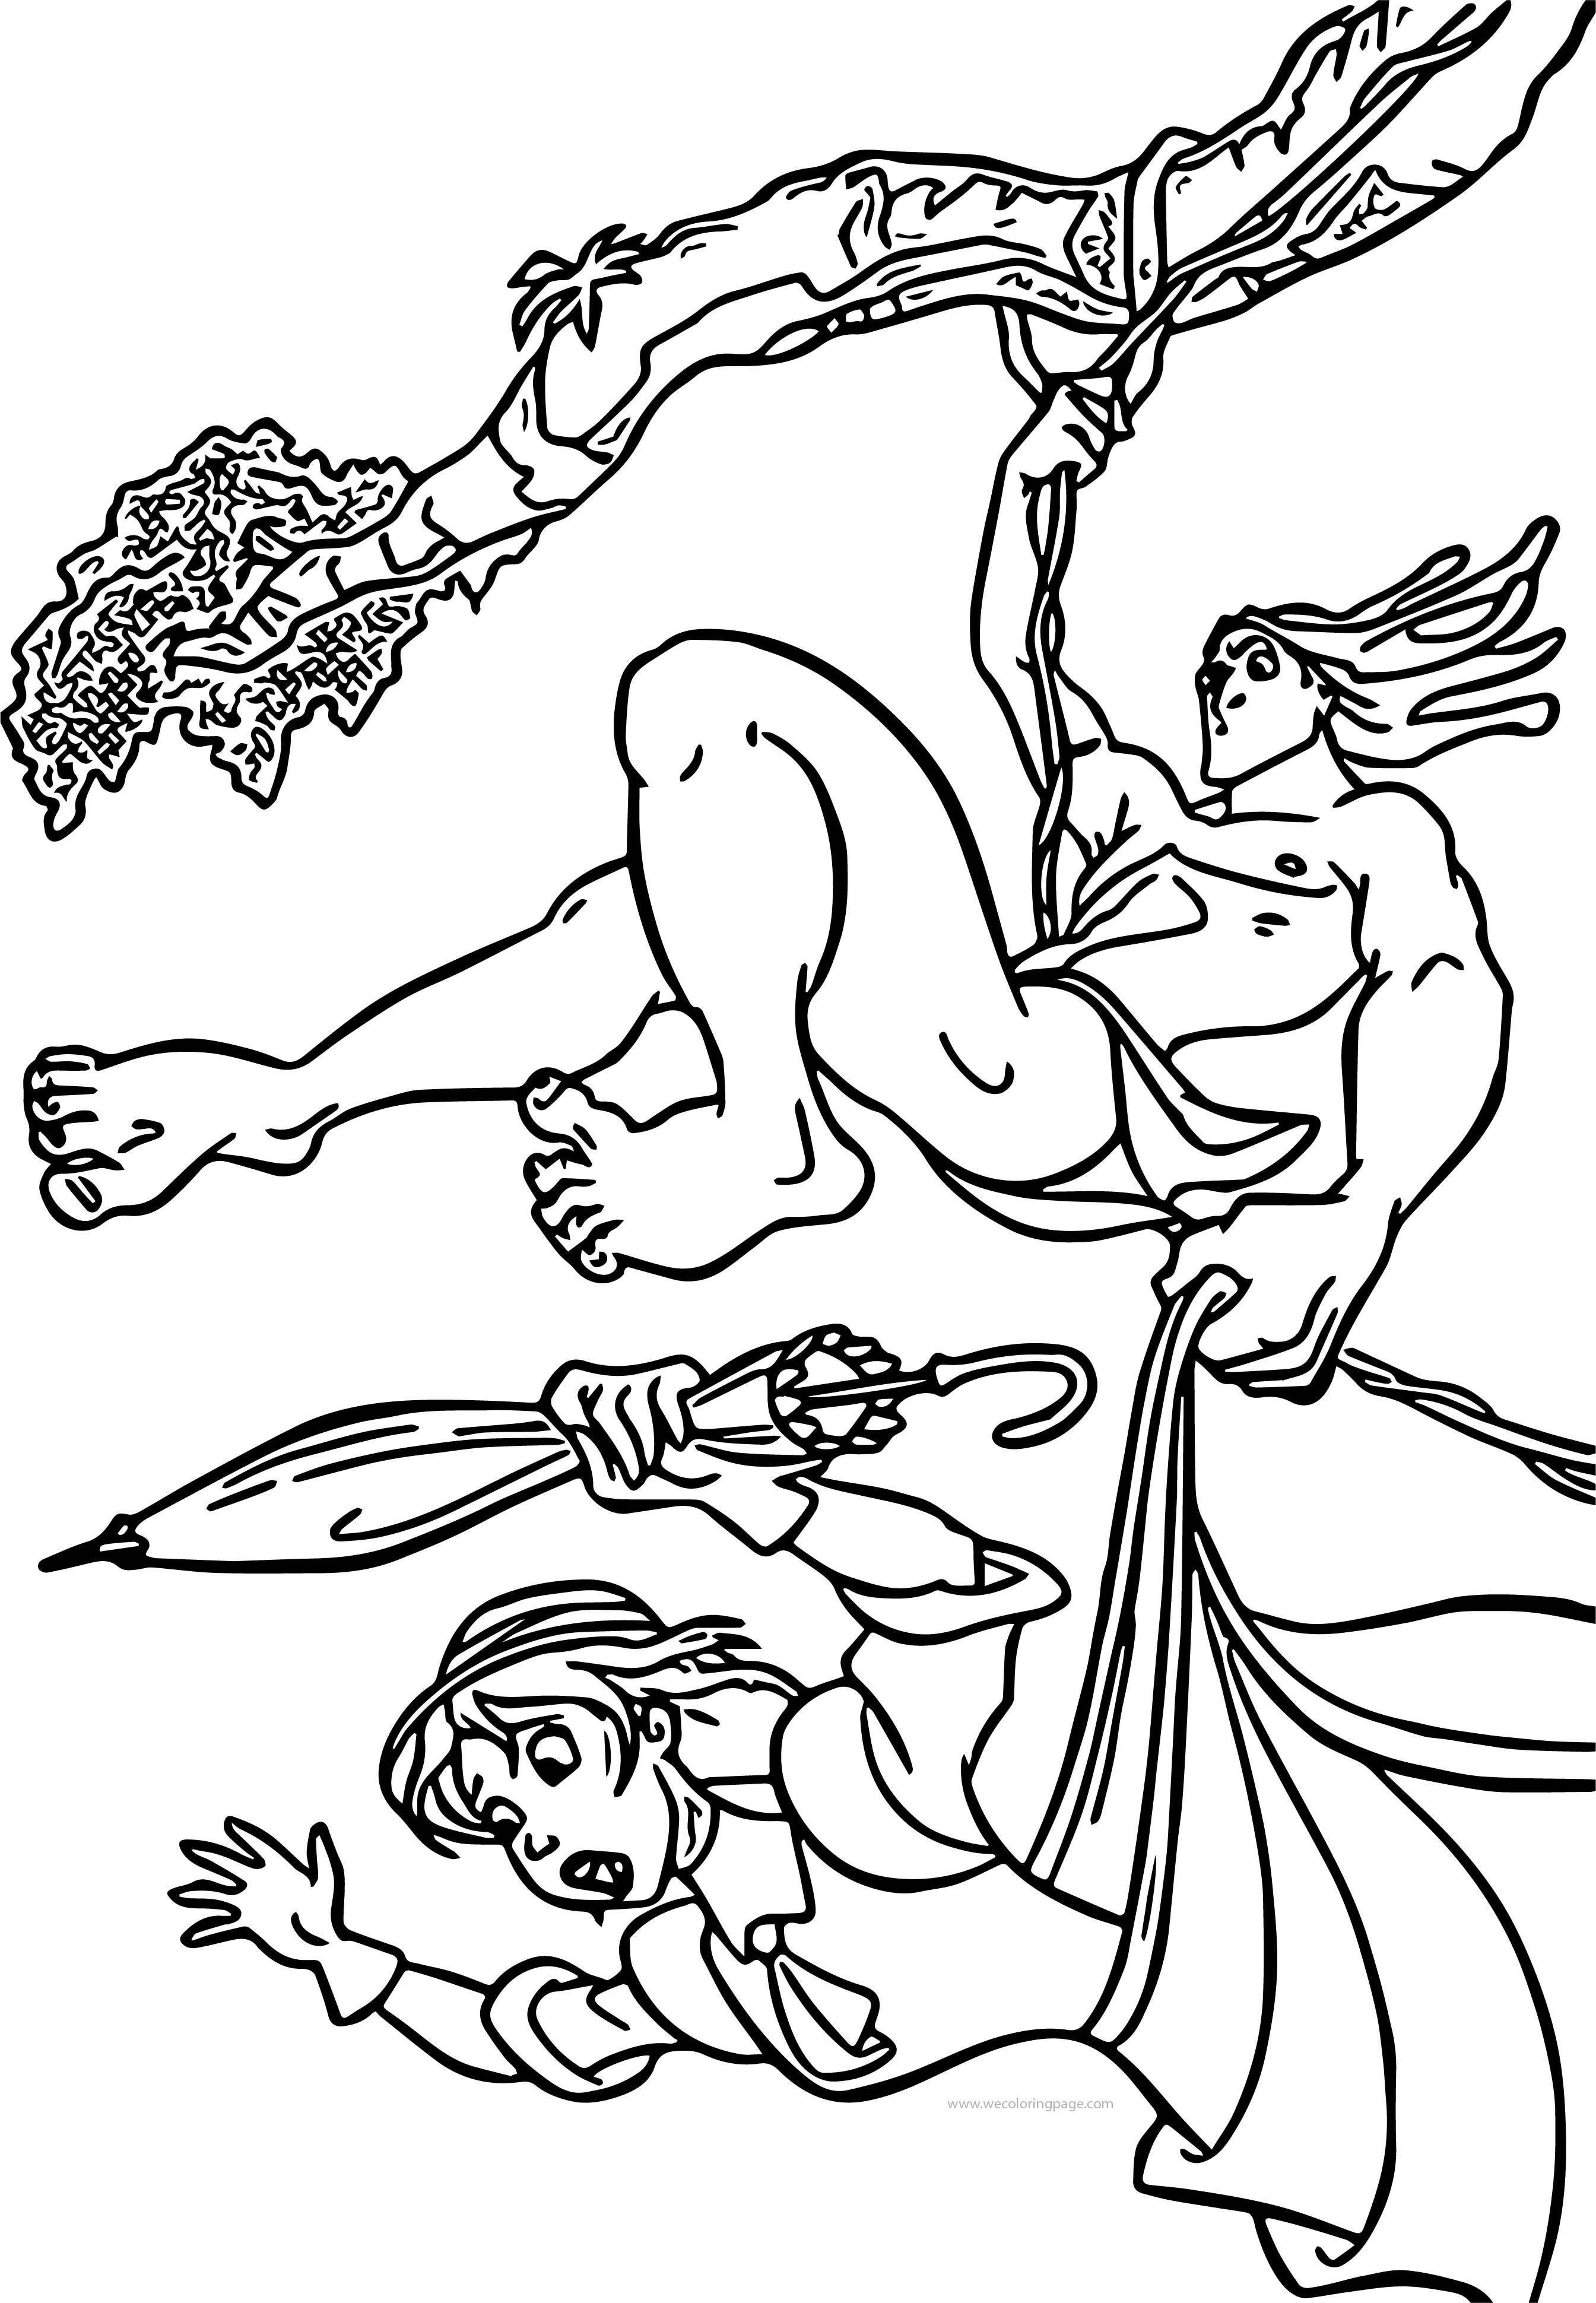 Tarzan And Jane Forest Coloring Pages | Wecoloringpage.com